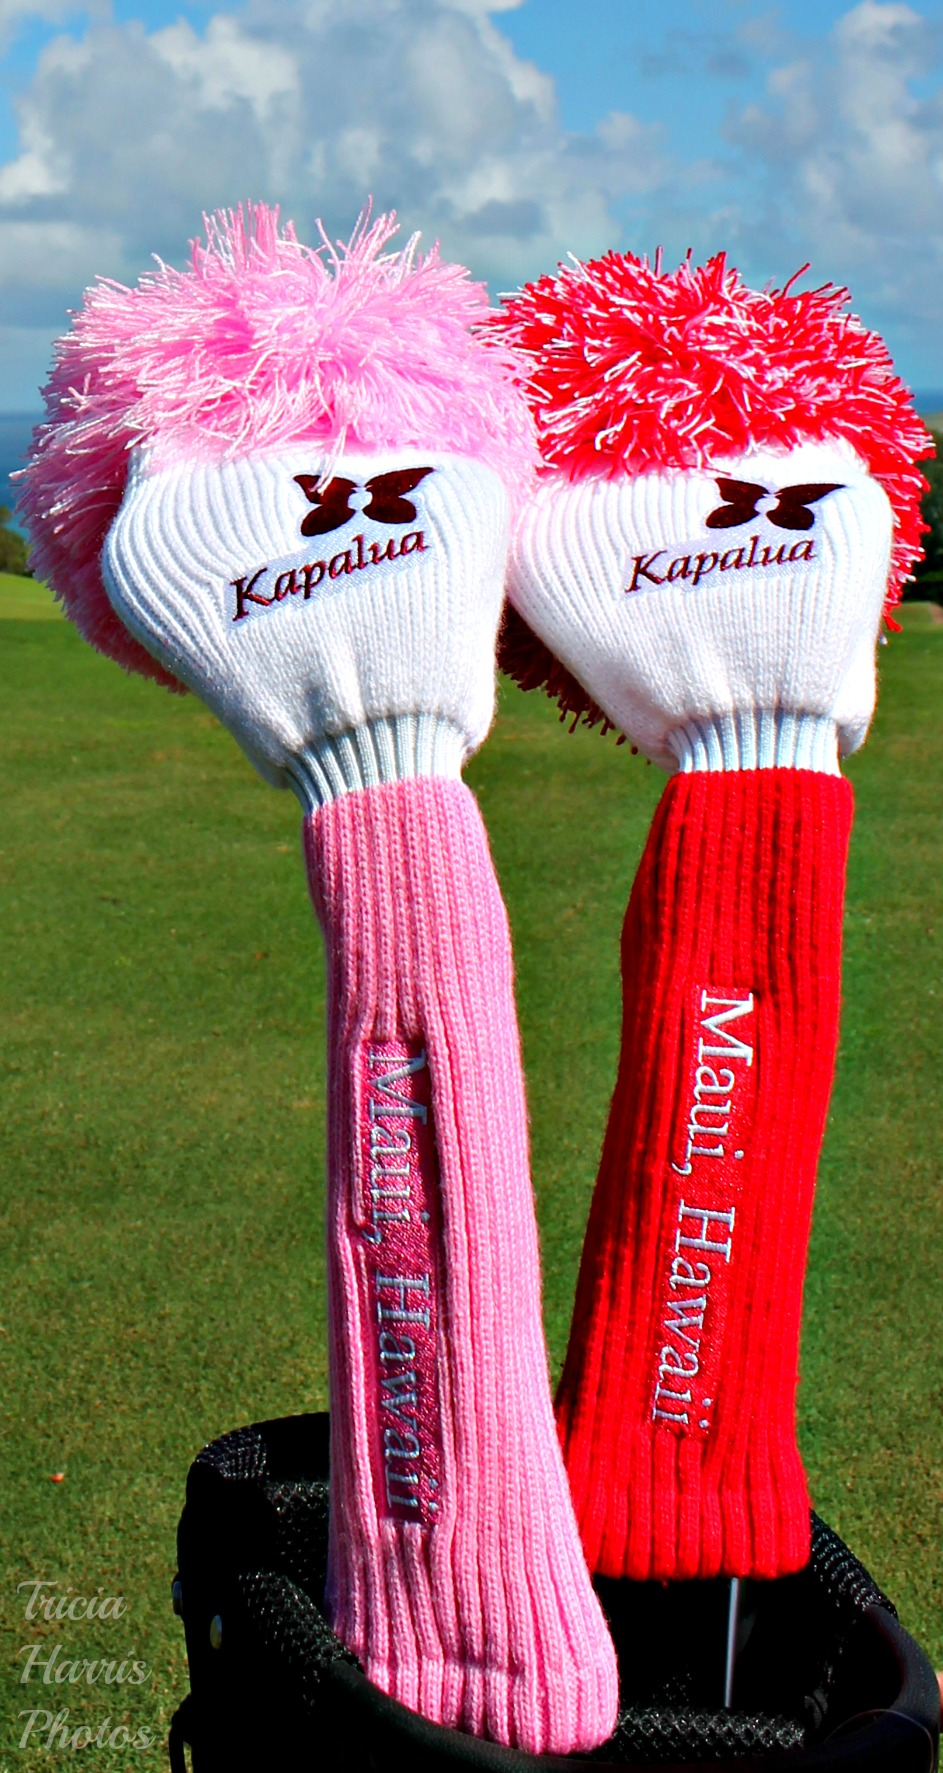 Kapalua Fuzzy Headcover Pink or Red